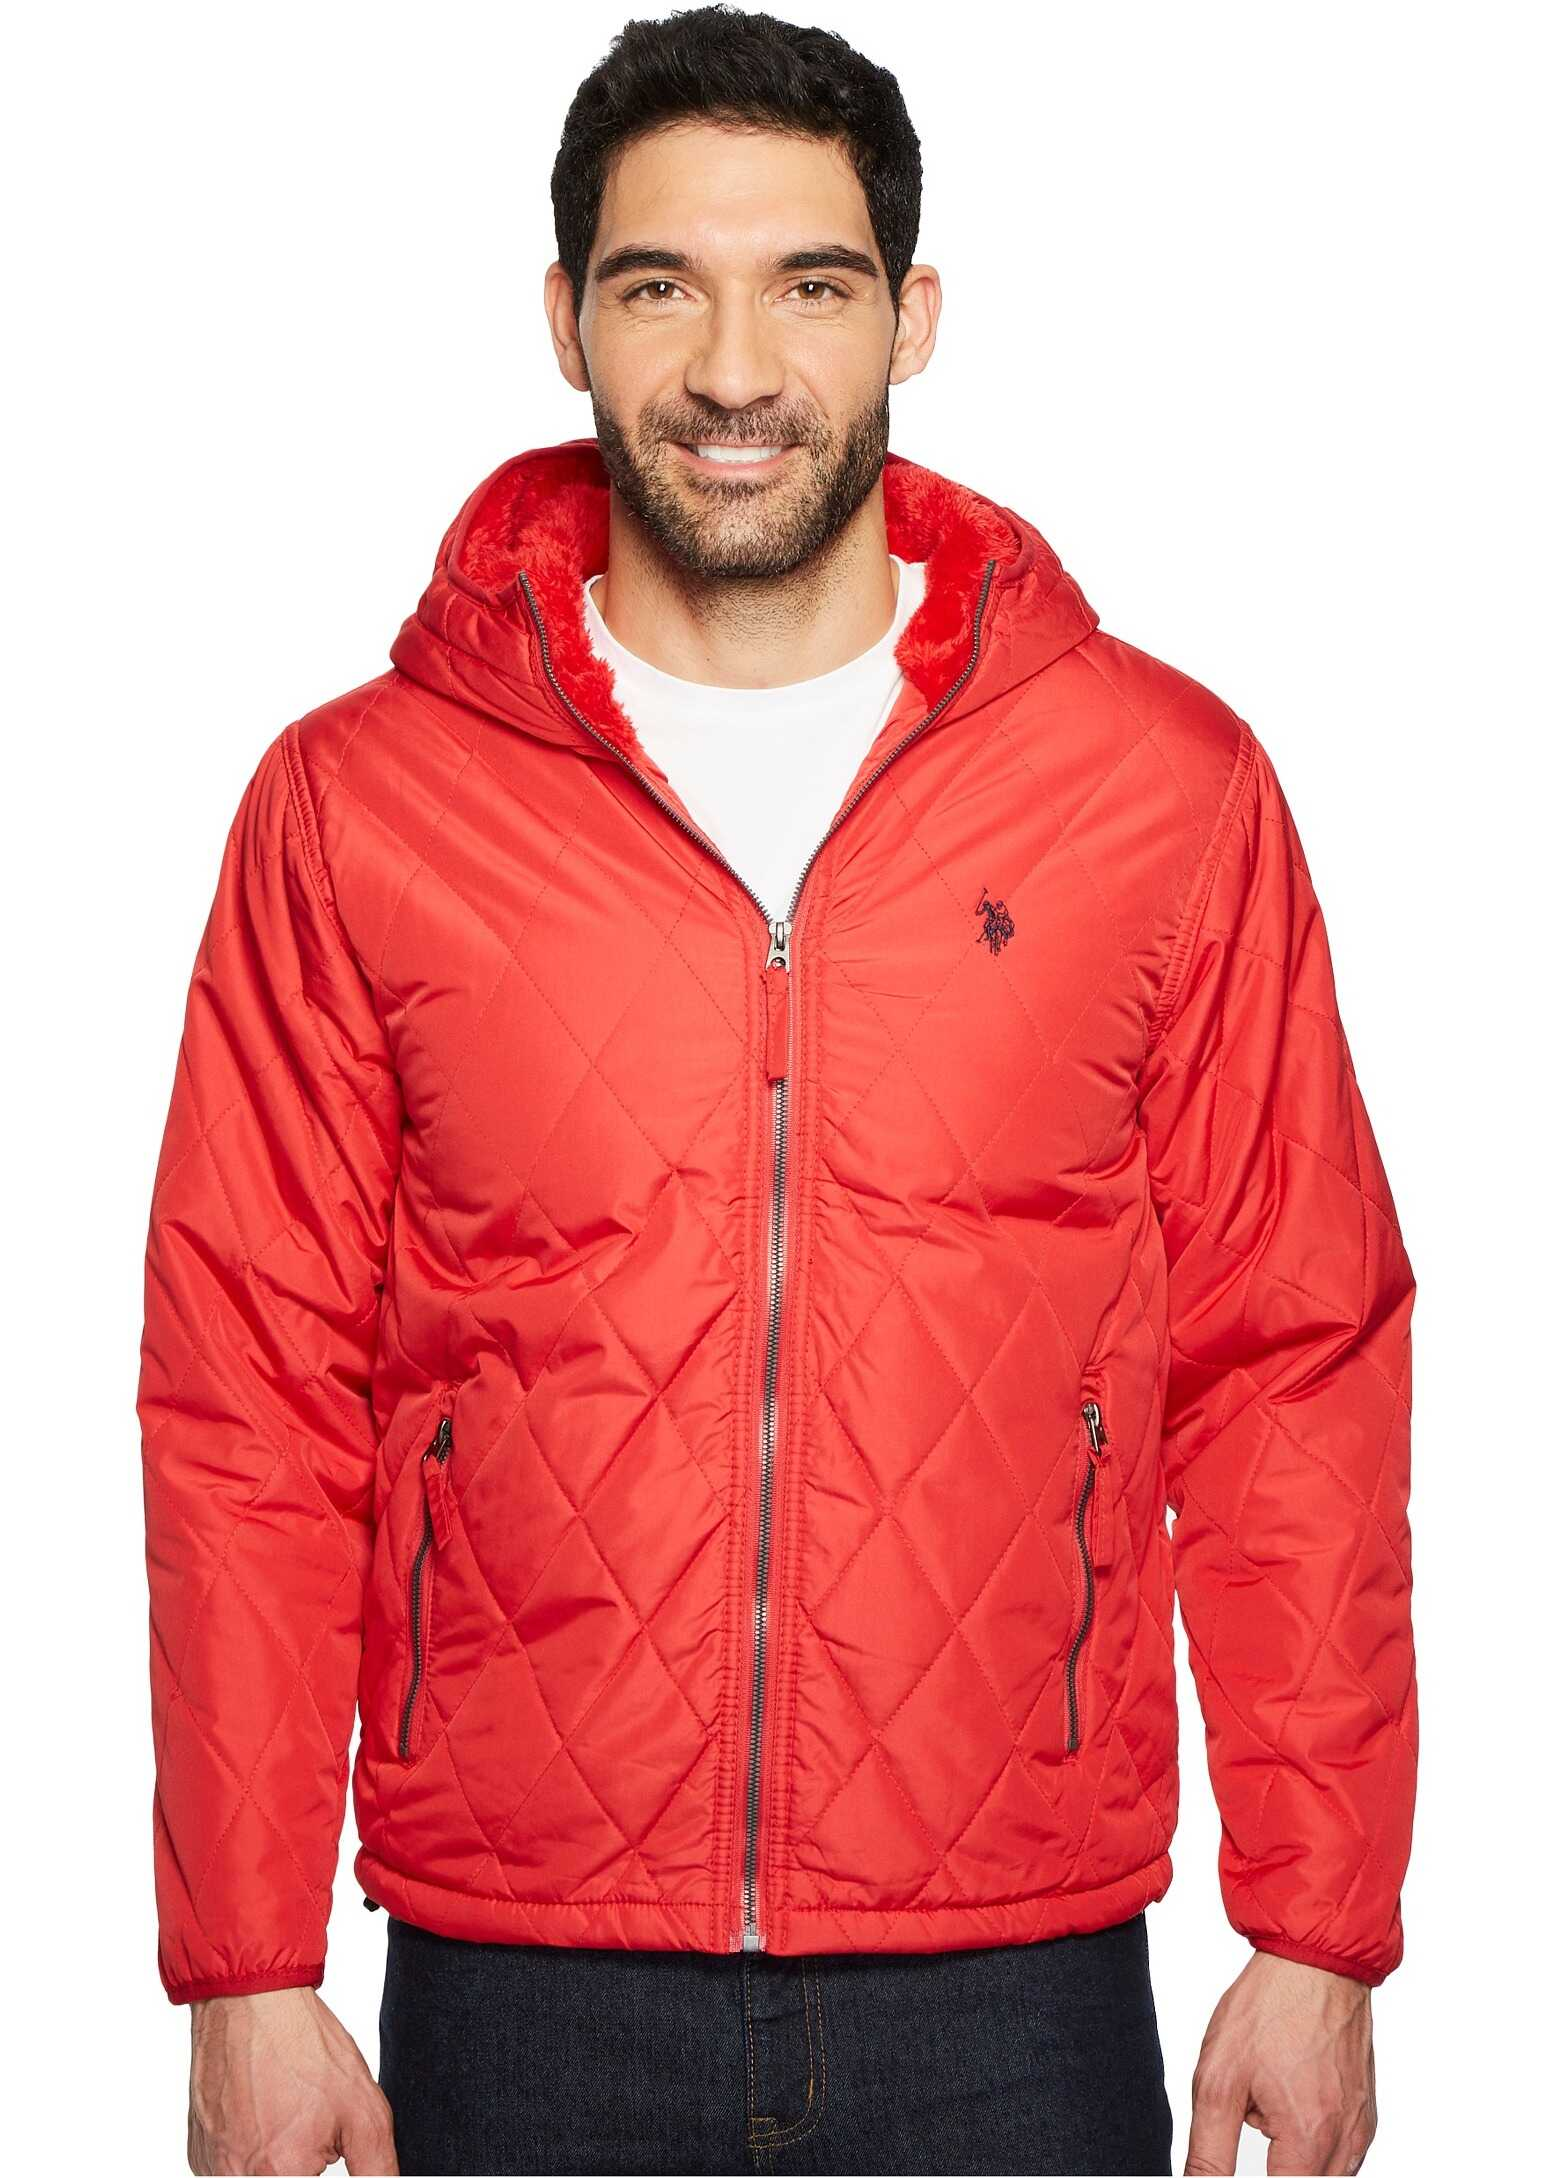 U.S. POLO ASSN. Diamond Quilted Hooded Jacket Chili Pepper